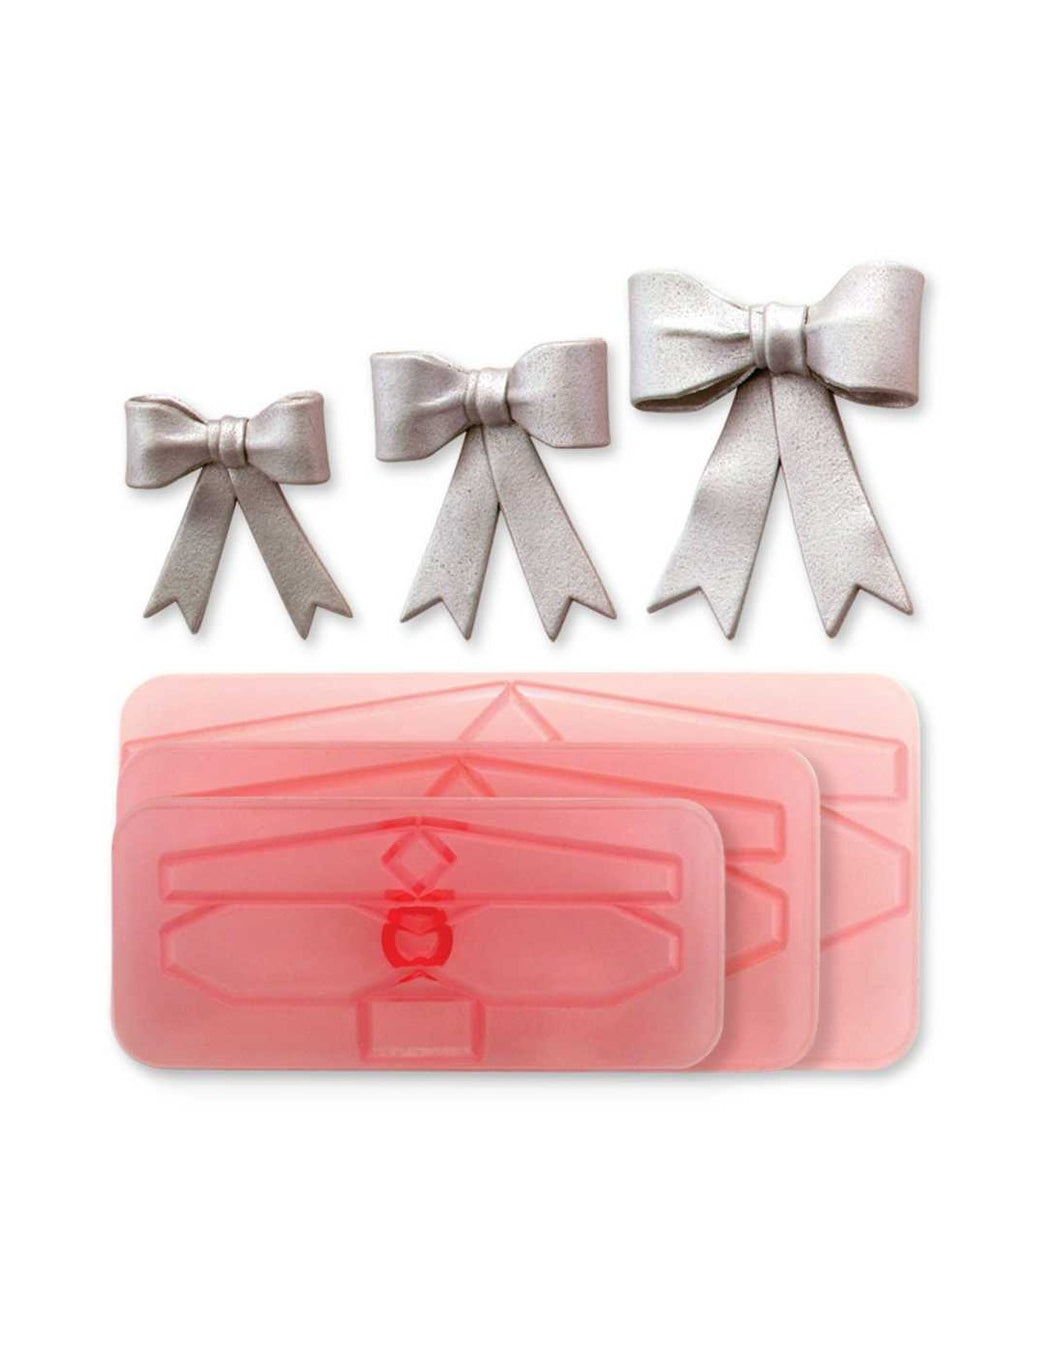 BORDERS CUTTERS - LARGE BOWS SET OF 3